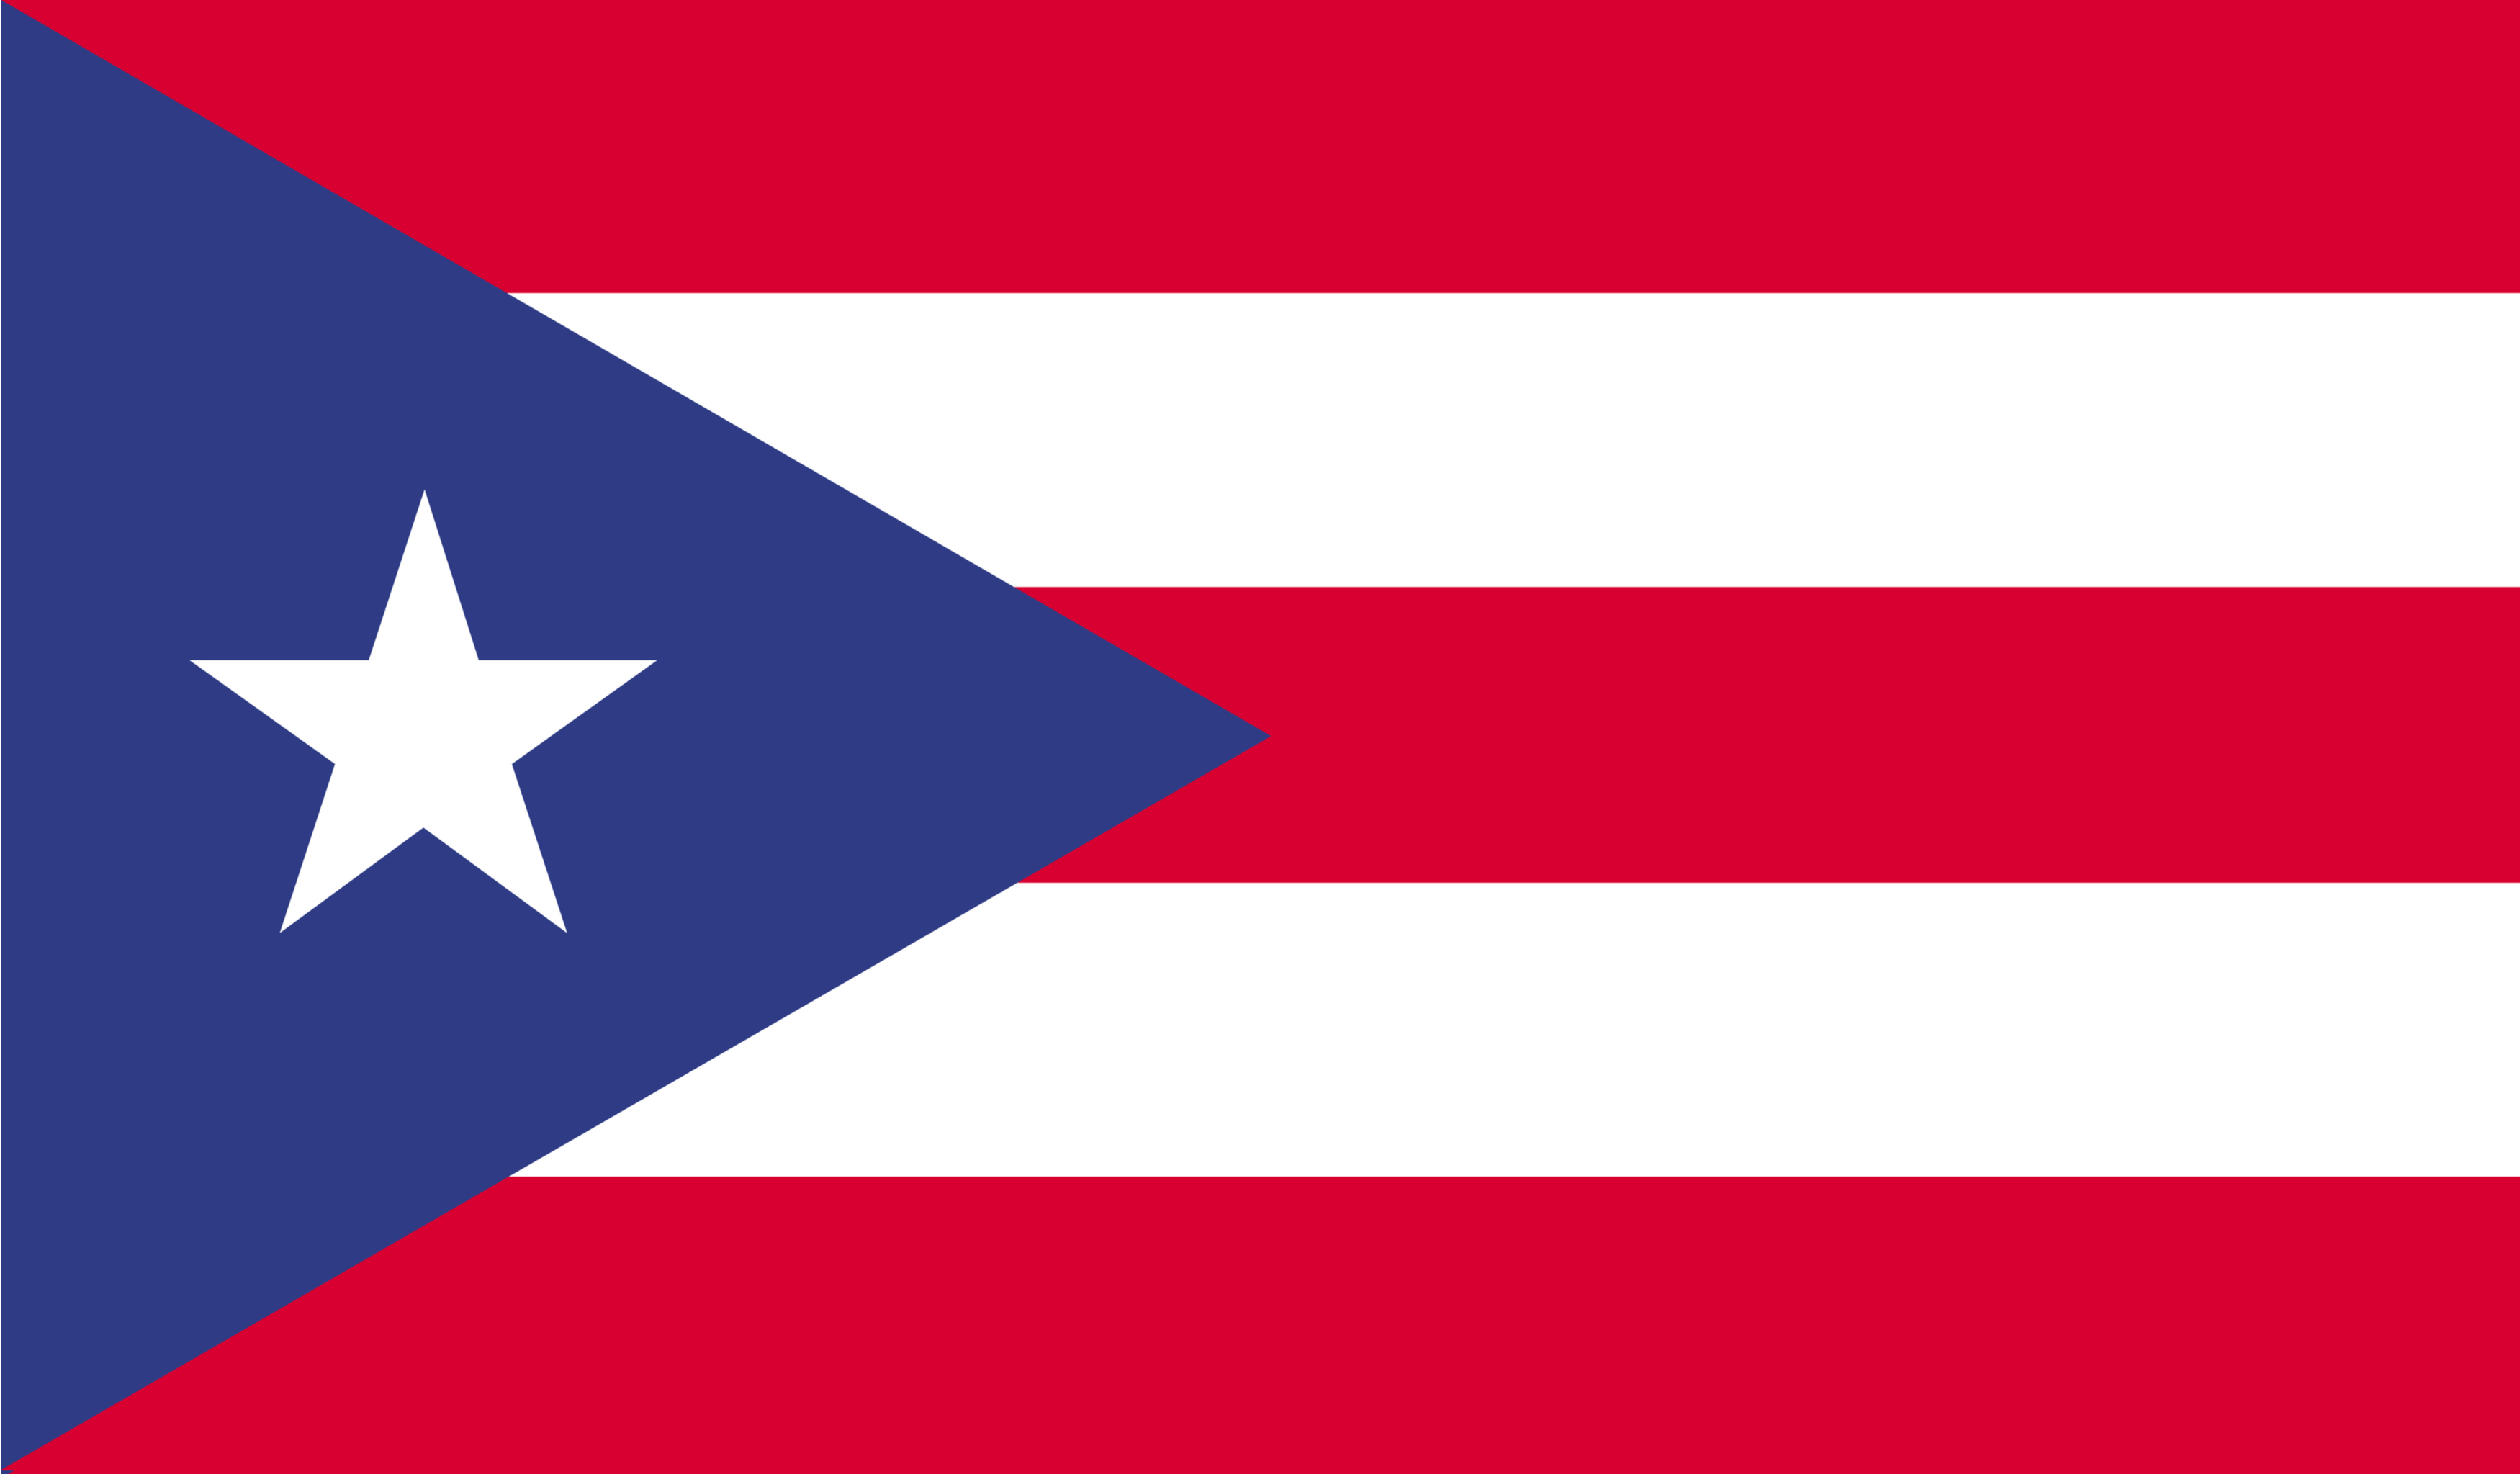 The Puerto Rican flag features a white star in a blue triangle with red and white stripes.